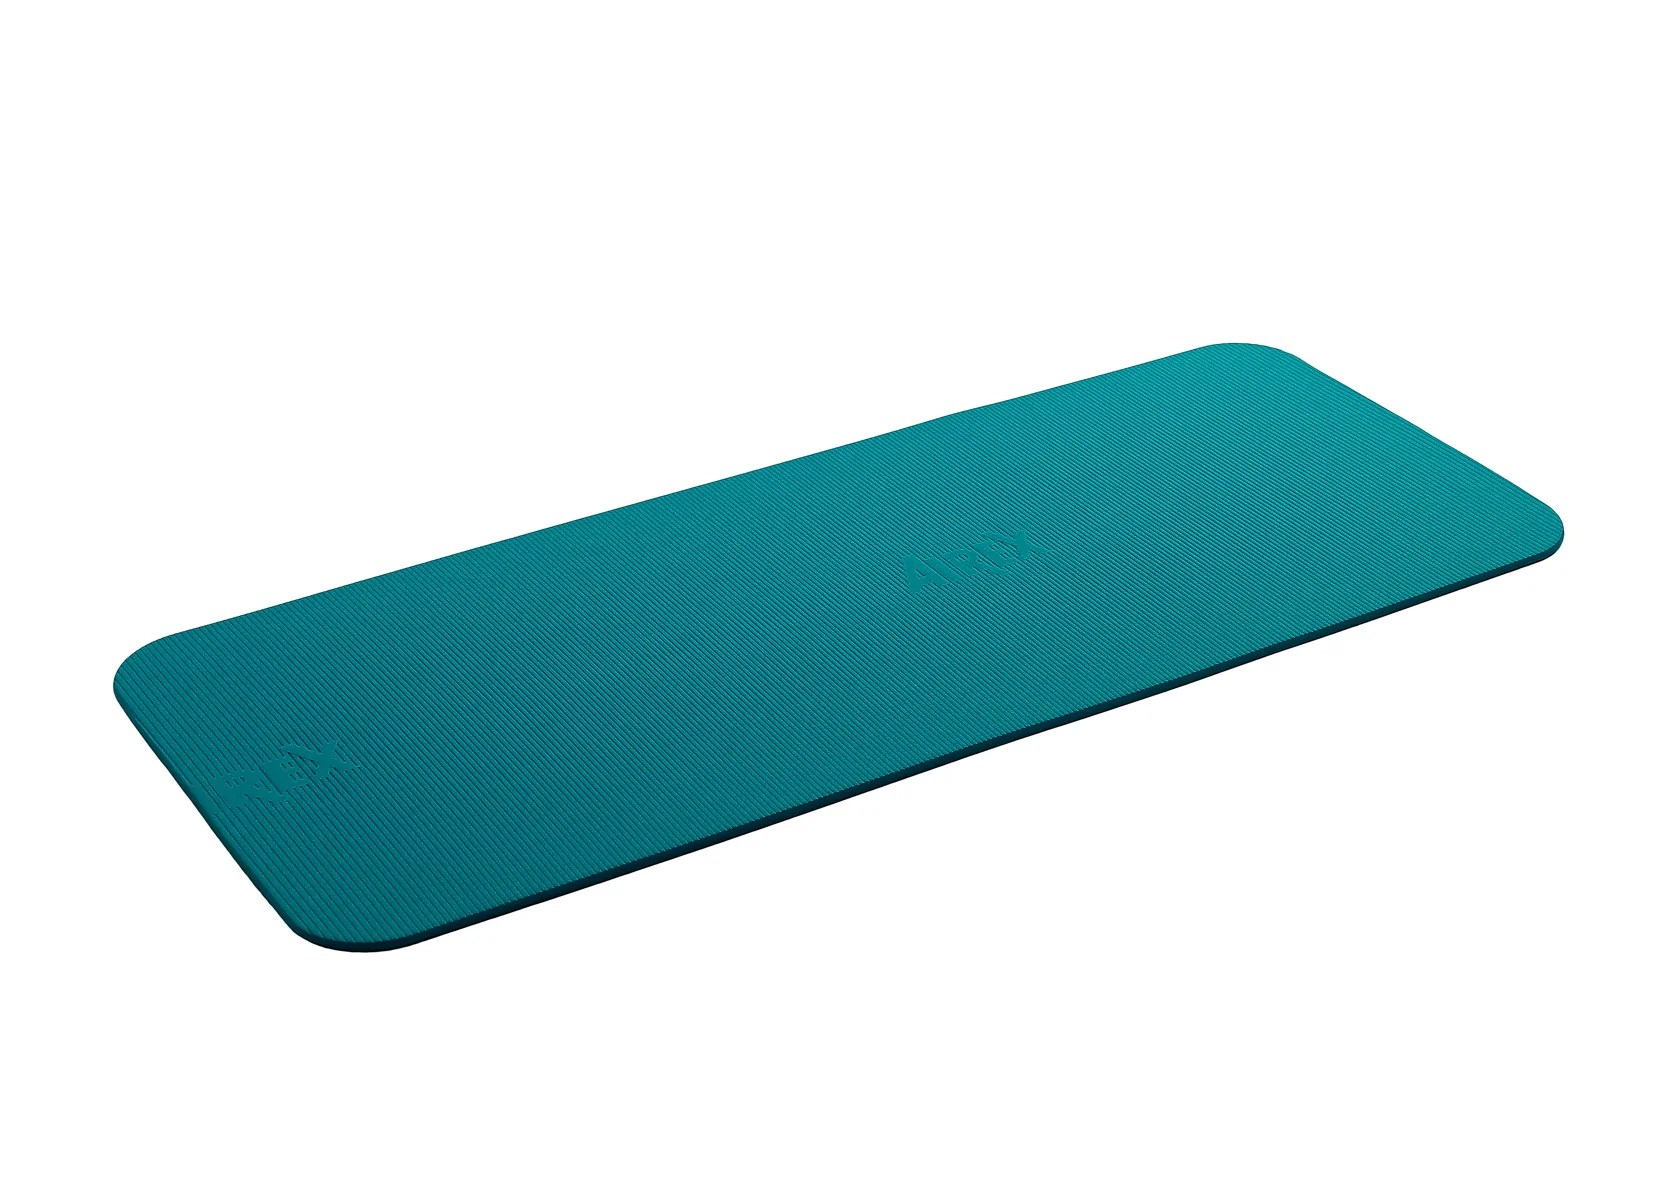 Closed Cell Foam Mat Airex Fitline 140 Exercise Mats